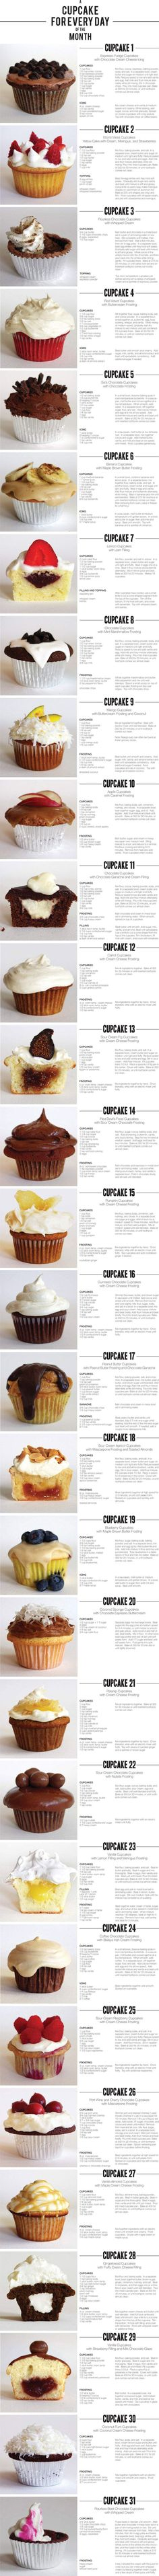 A Cupcake For Every Day Of The Month food cupcake cupcakes dessert recipe recipes dessert recipes